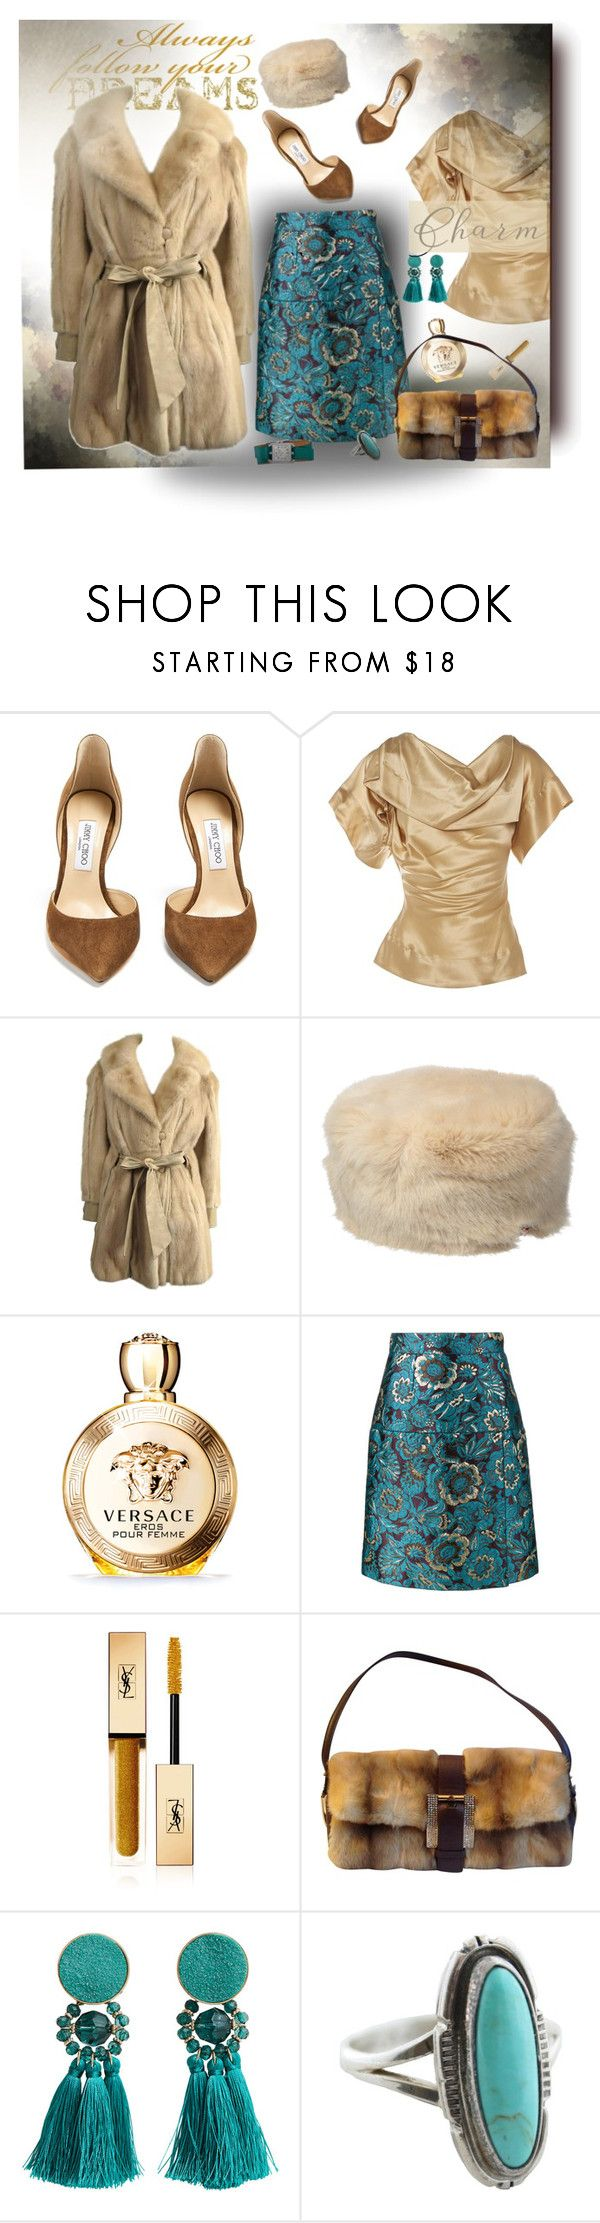 """27/2/2018"" by barbara-gennari ❤ liked on Polyvore featuring Jimmy Choo, Vivienne Westwood, Ted Baker, Versace, Dolce&Gabbana, Yves Saint Laurent, MANGO and GUESS"